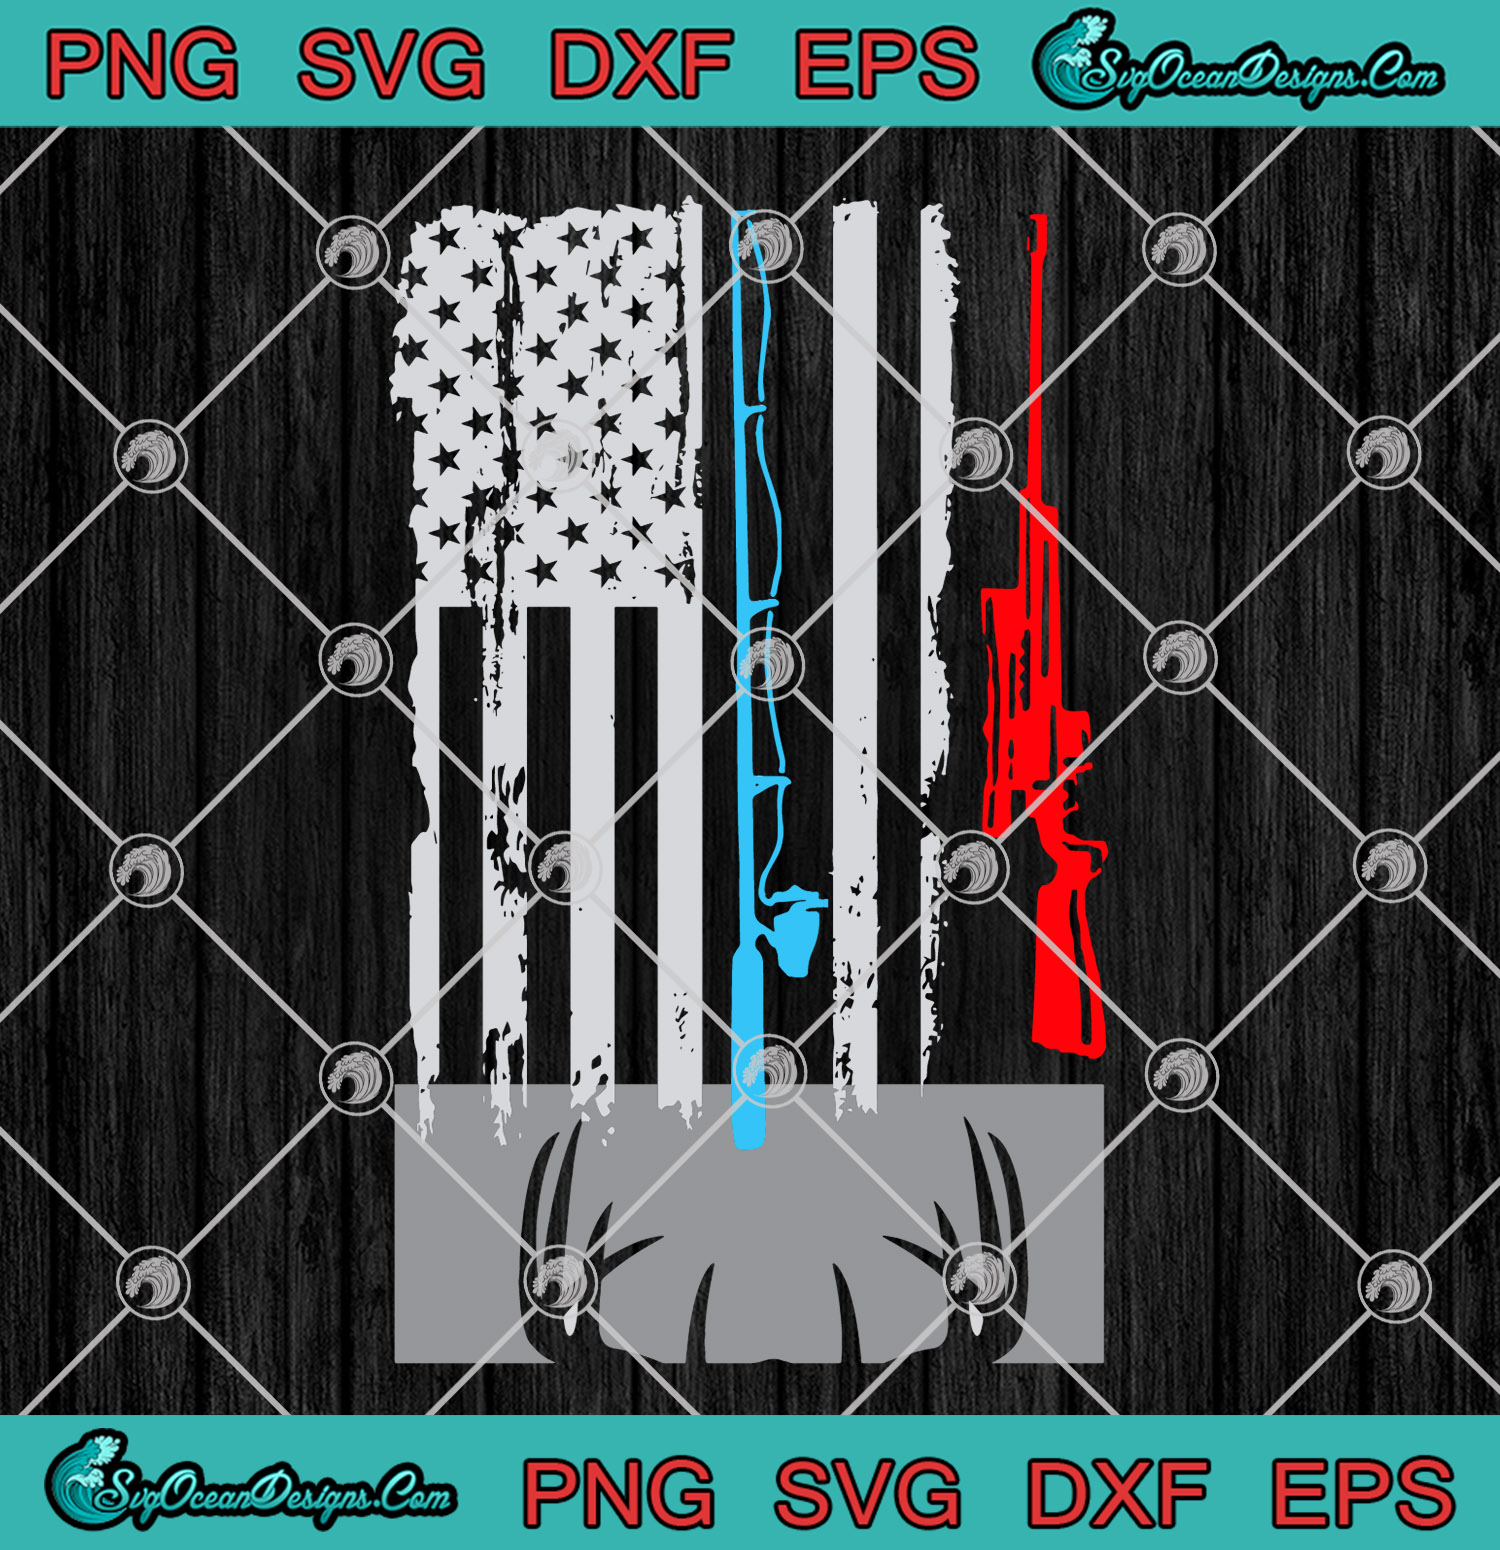 Download Love Guns And Fishing Rods American Flag Svg Hunting Svg Svg Png Eps Dxf Art Vector Designs For Shirts Svg Png Eps Dxf Cricut Silhouette Designs Digital Download